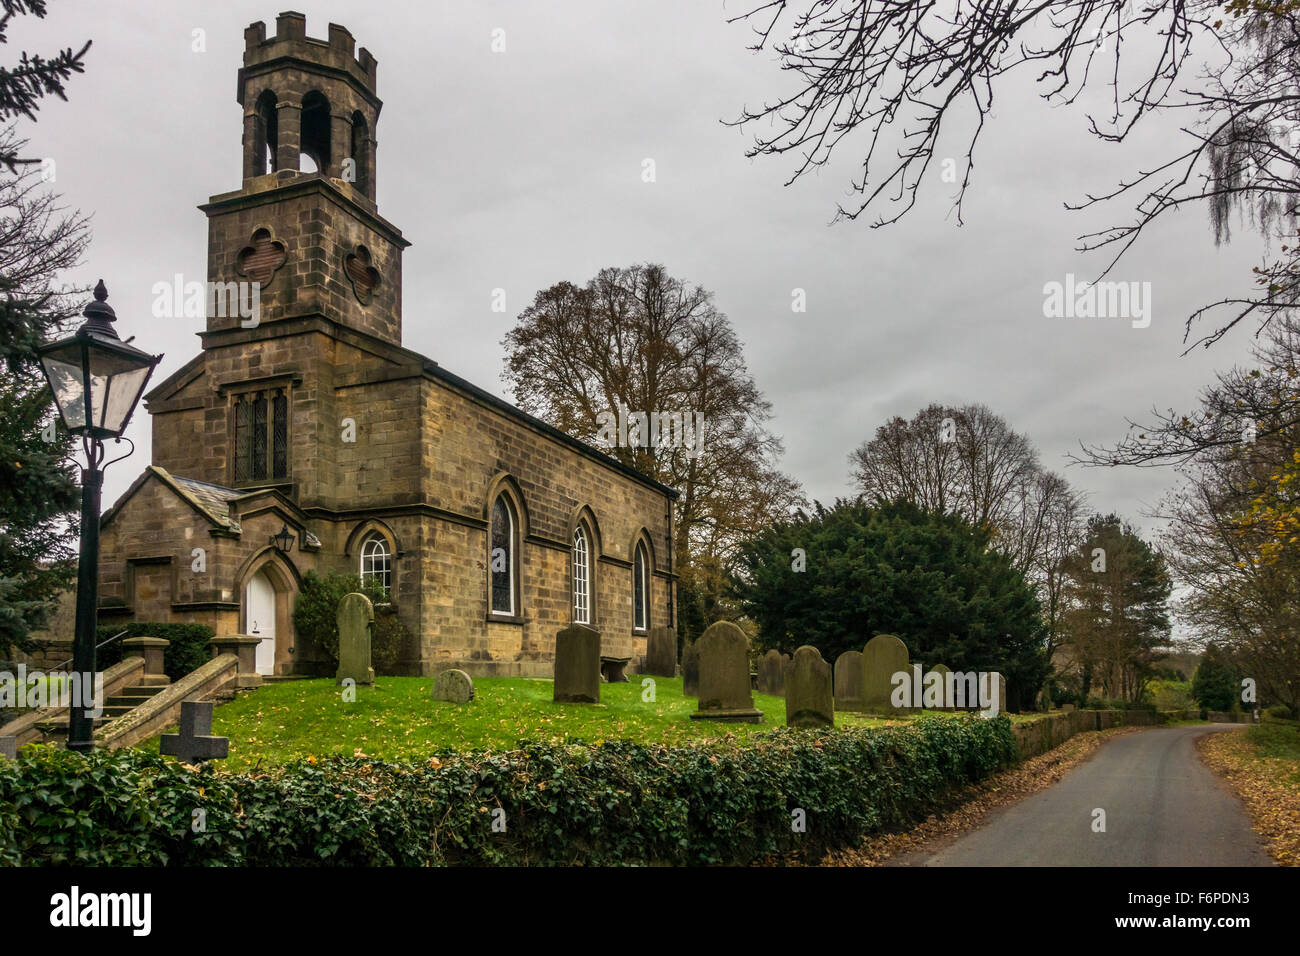 St Helen's Church in Denton, Ilkley, Yorkshire, England. Famous for baptising and christening Sir Thomas Fairfield - Stock Image